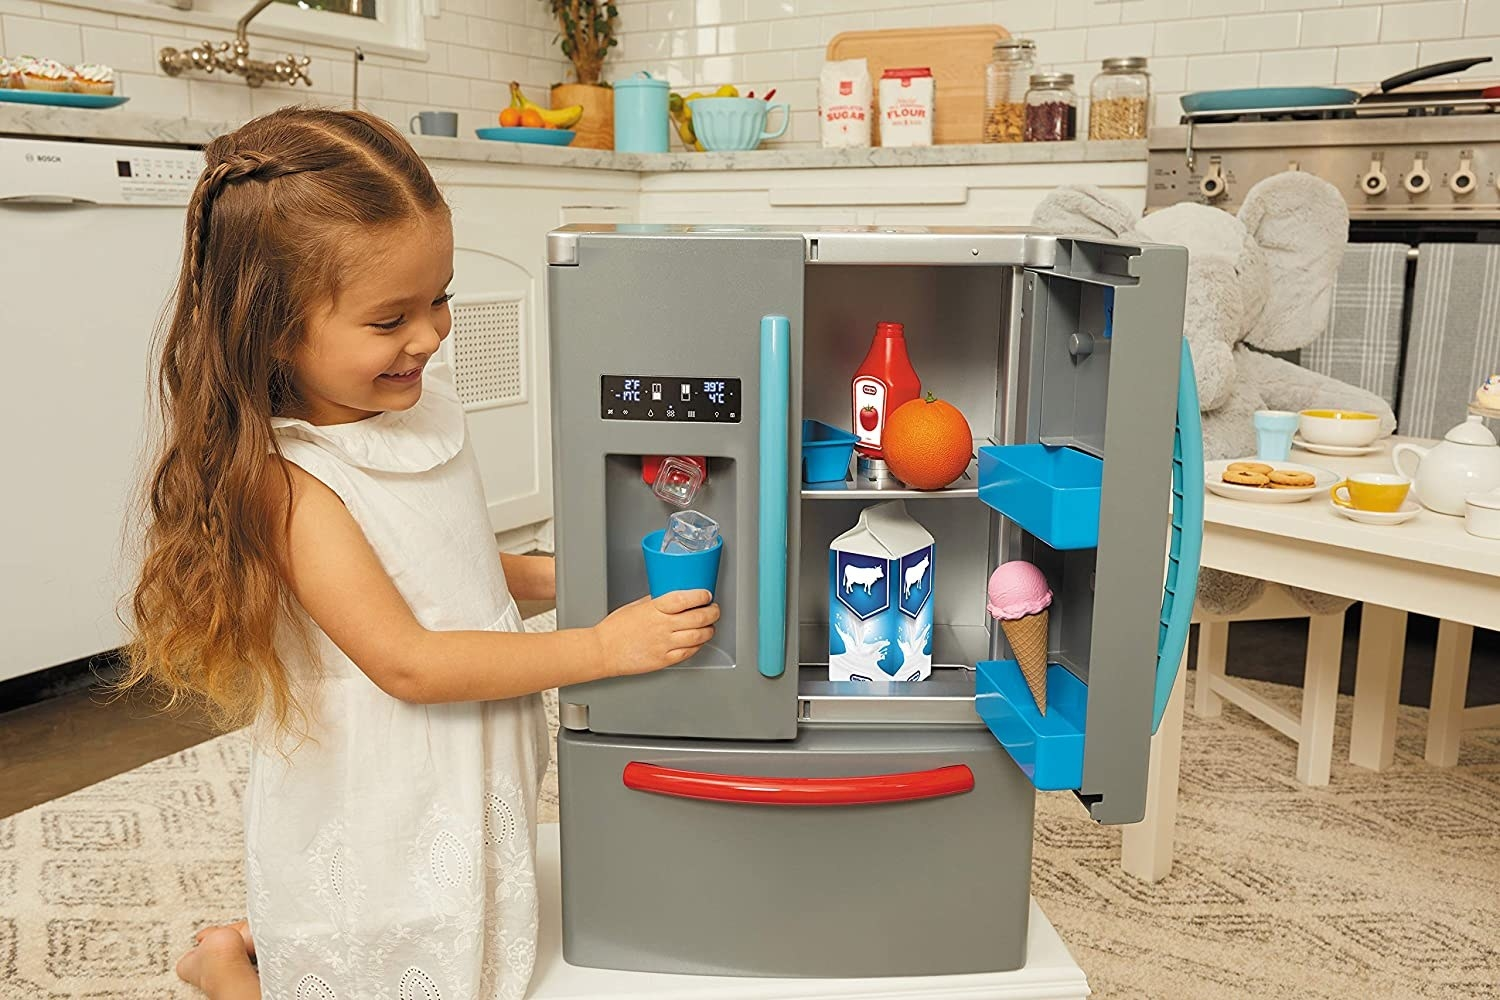 A child playing with the refrigerator playset